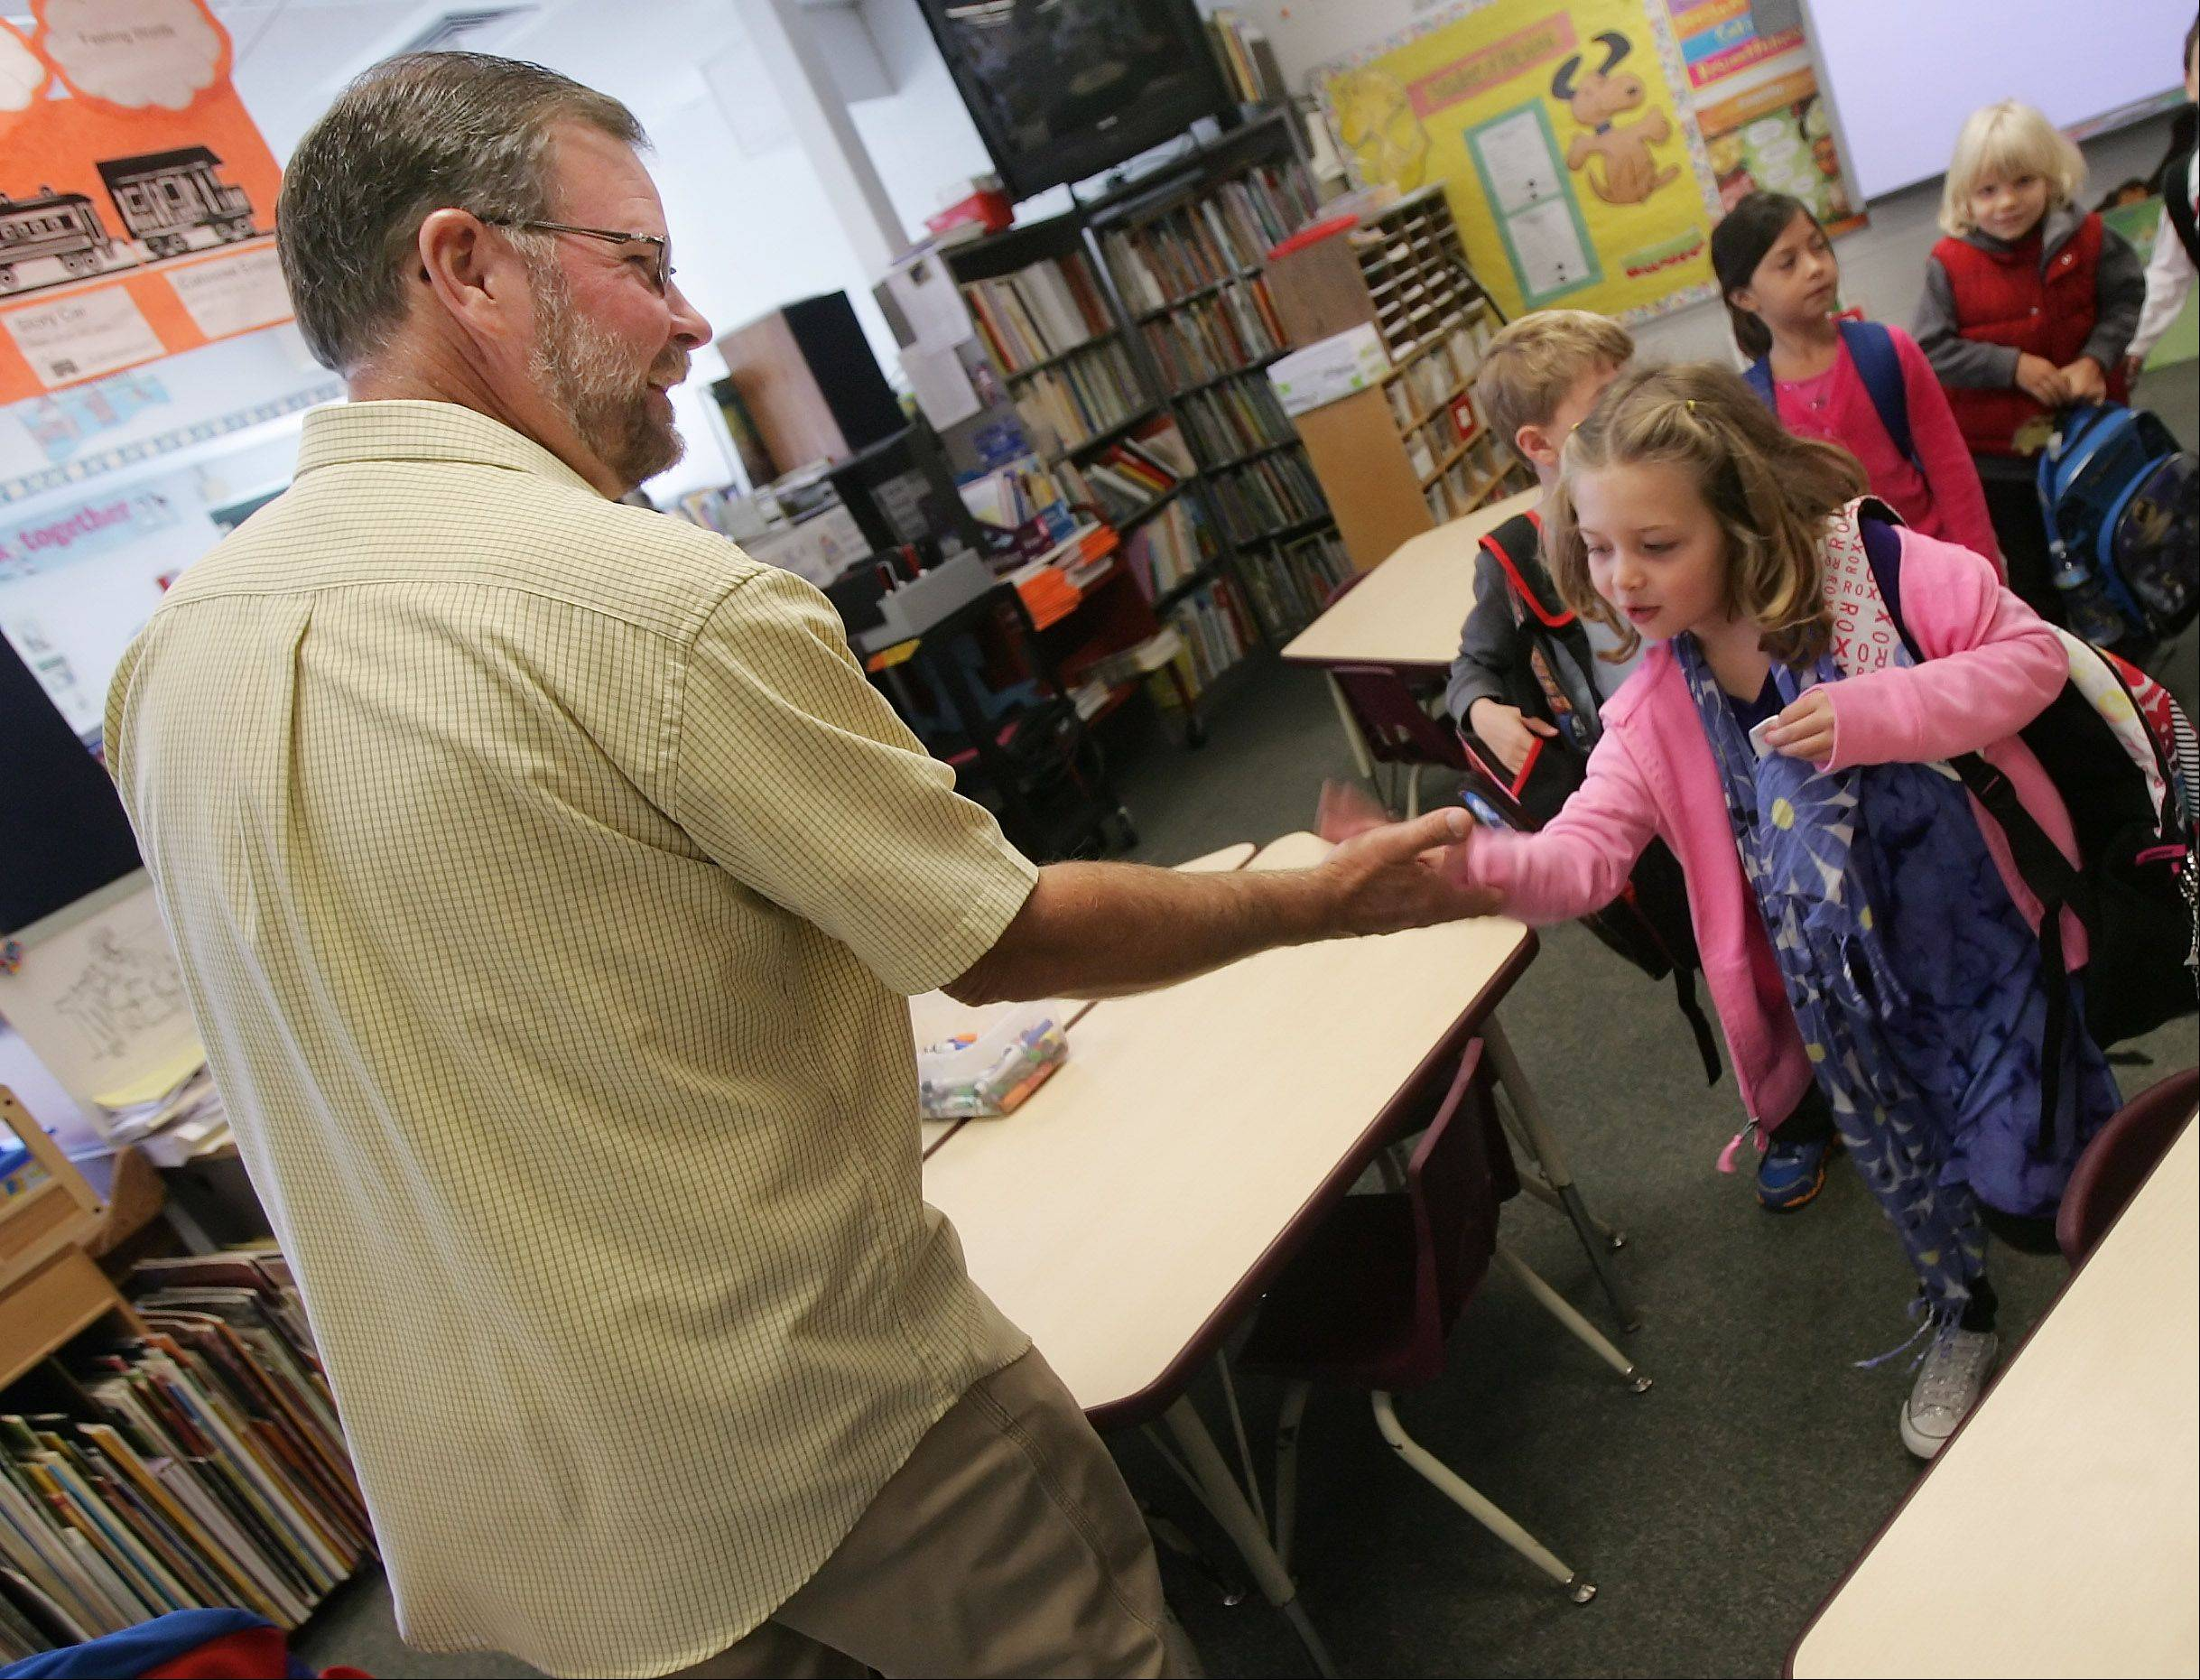 Kindergarten teacher Tim Gapp slaps hands with Madeline Lewis as he welcomes his students to his class at North Barrington Elementary School.